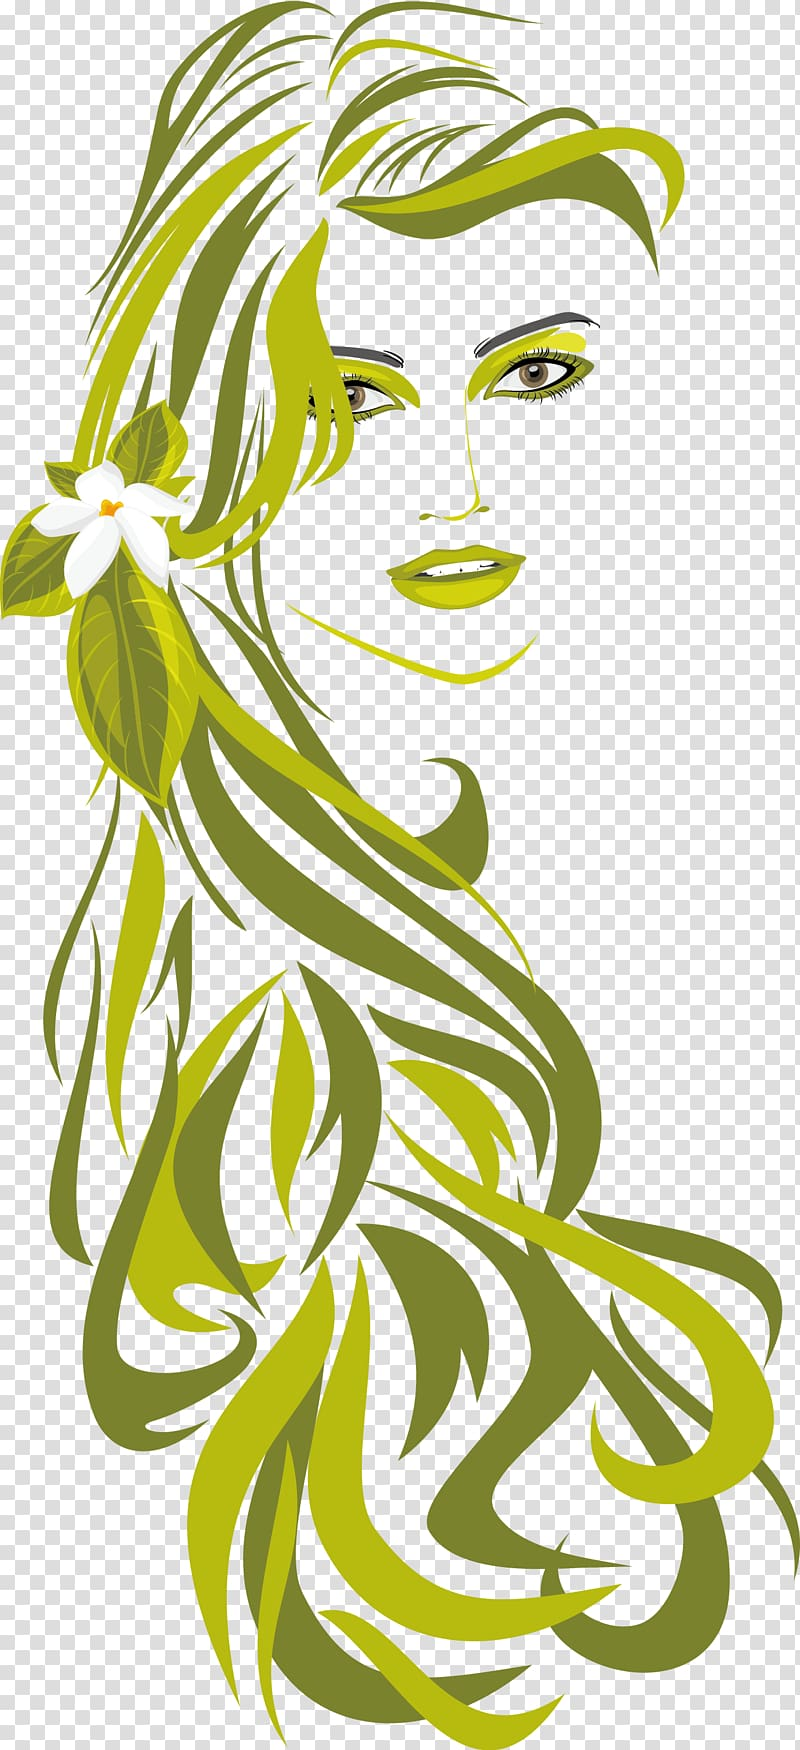 Beauty clipart beauty parlour. Hairstyle illustration girl